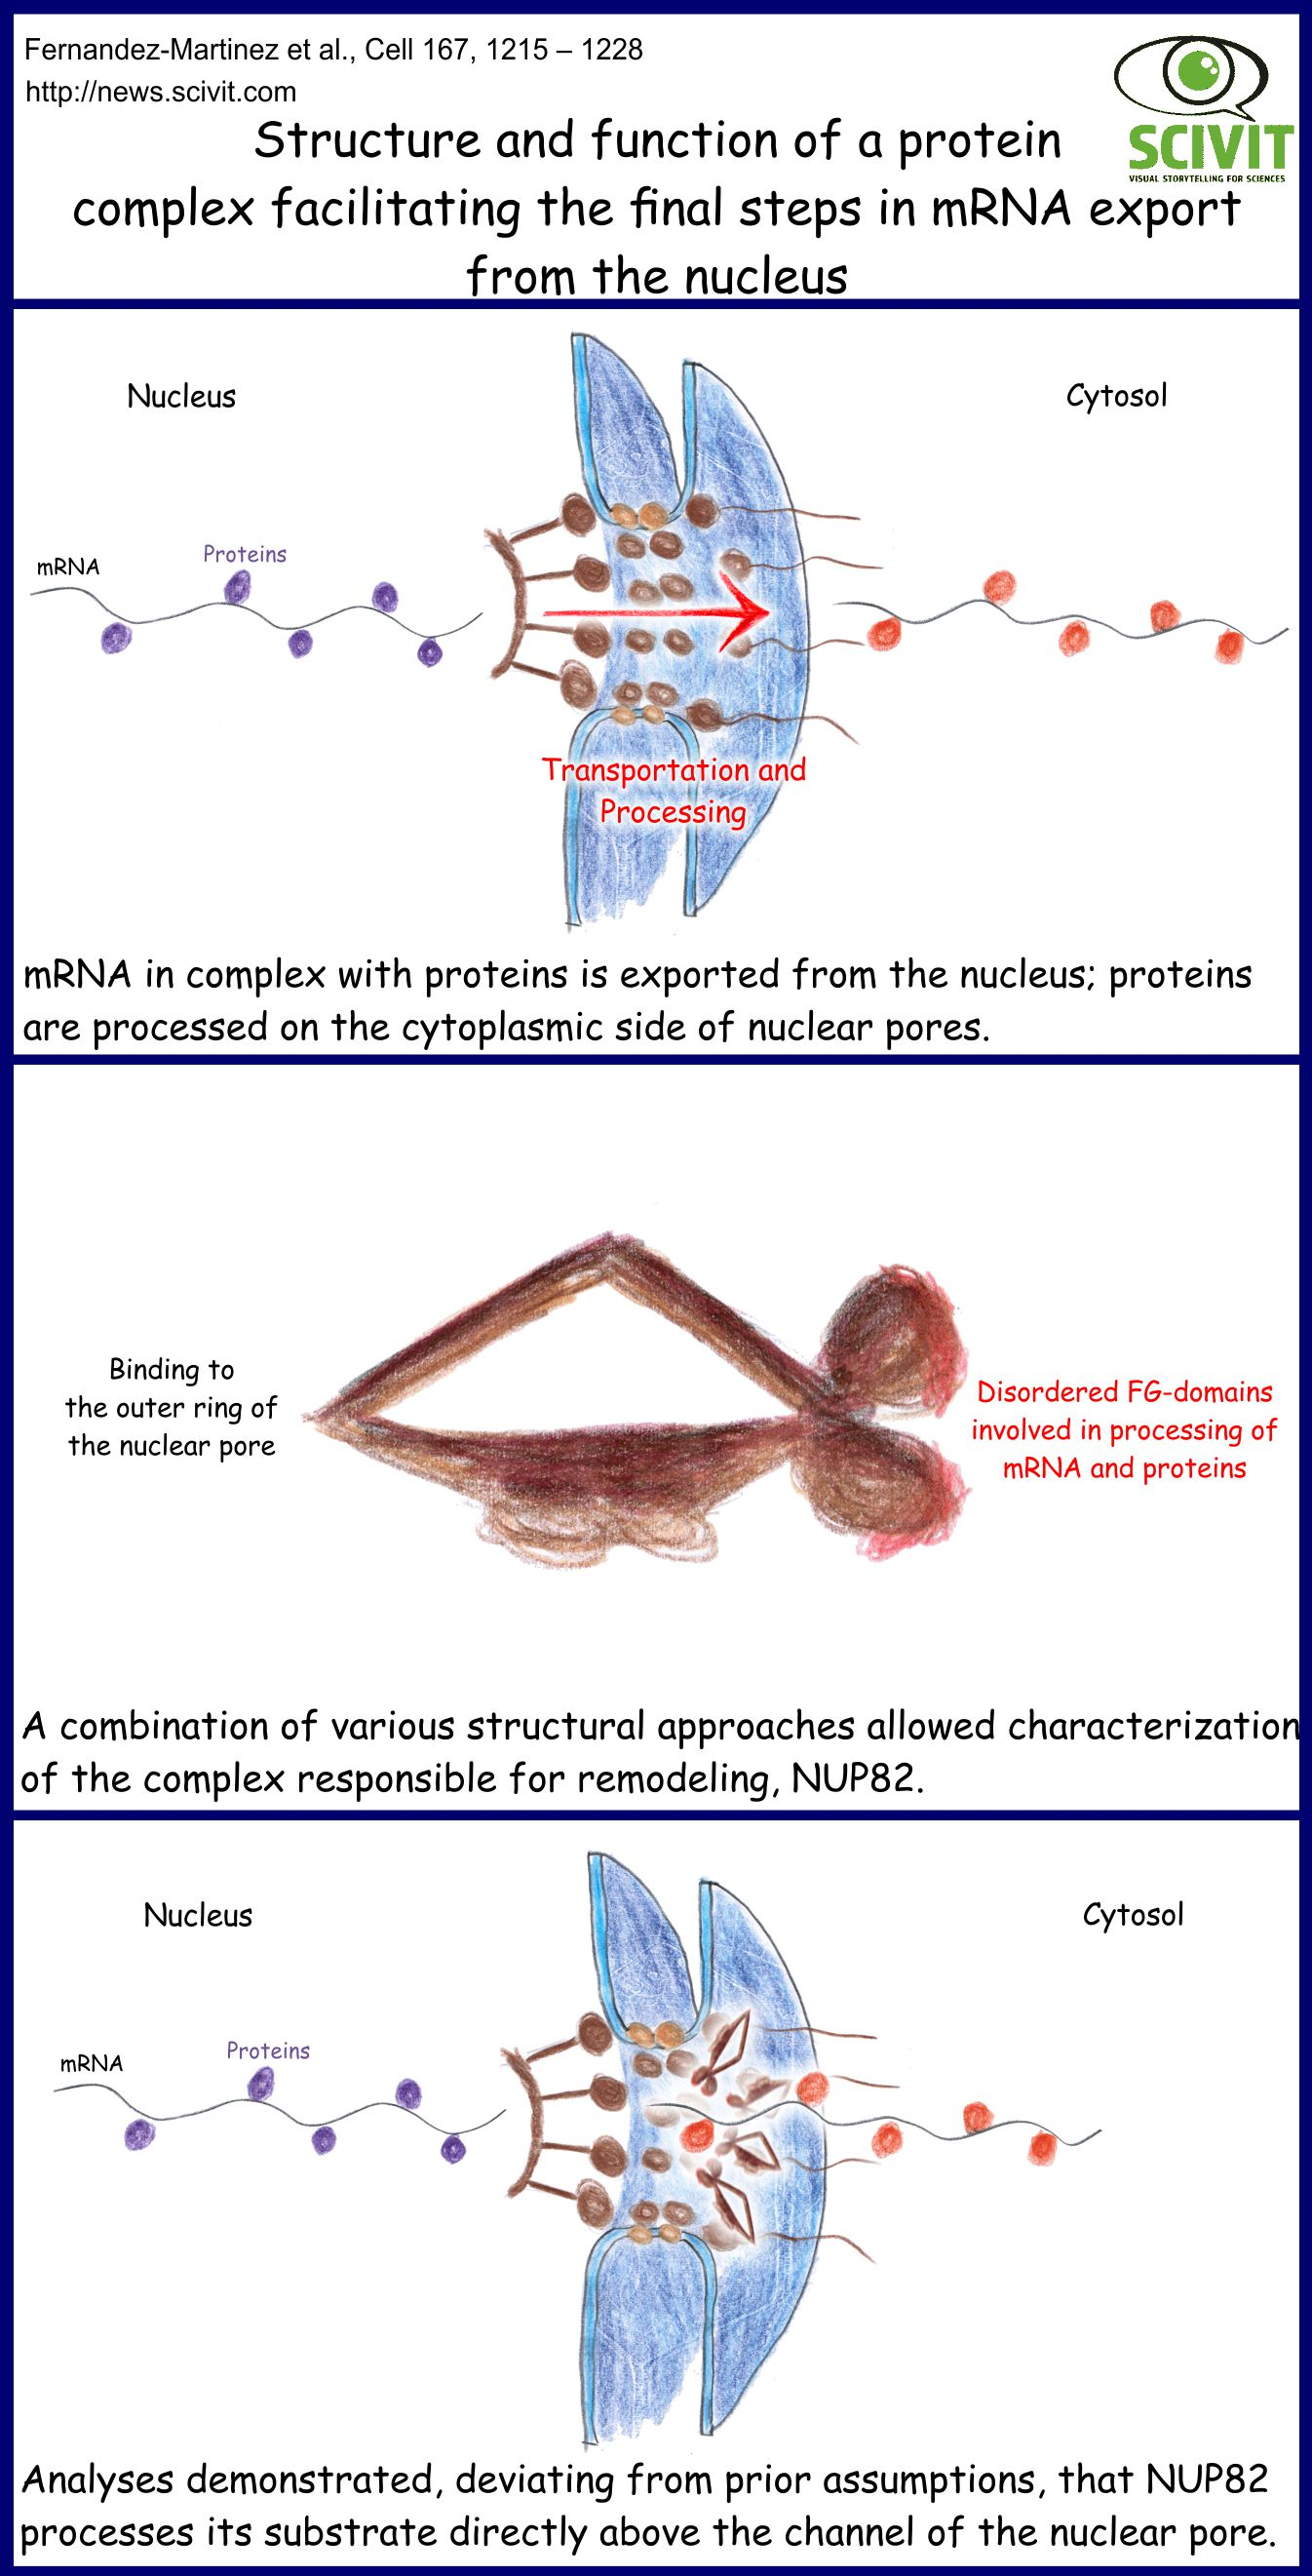 Structure and function of a protein complex facilitating the final steps in mRNA export from the nucleus